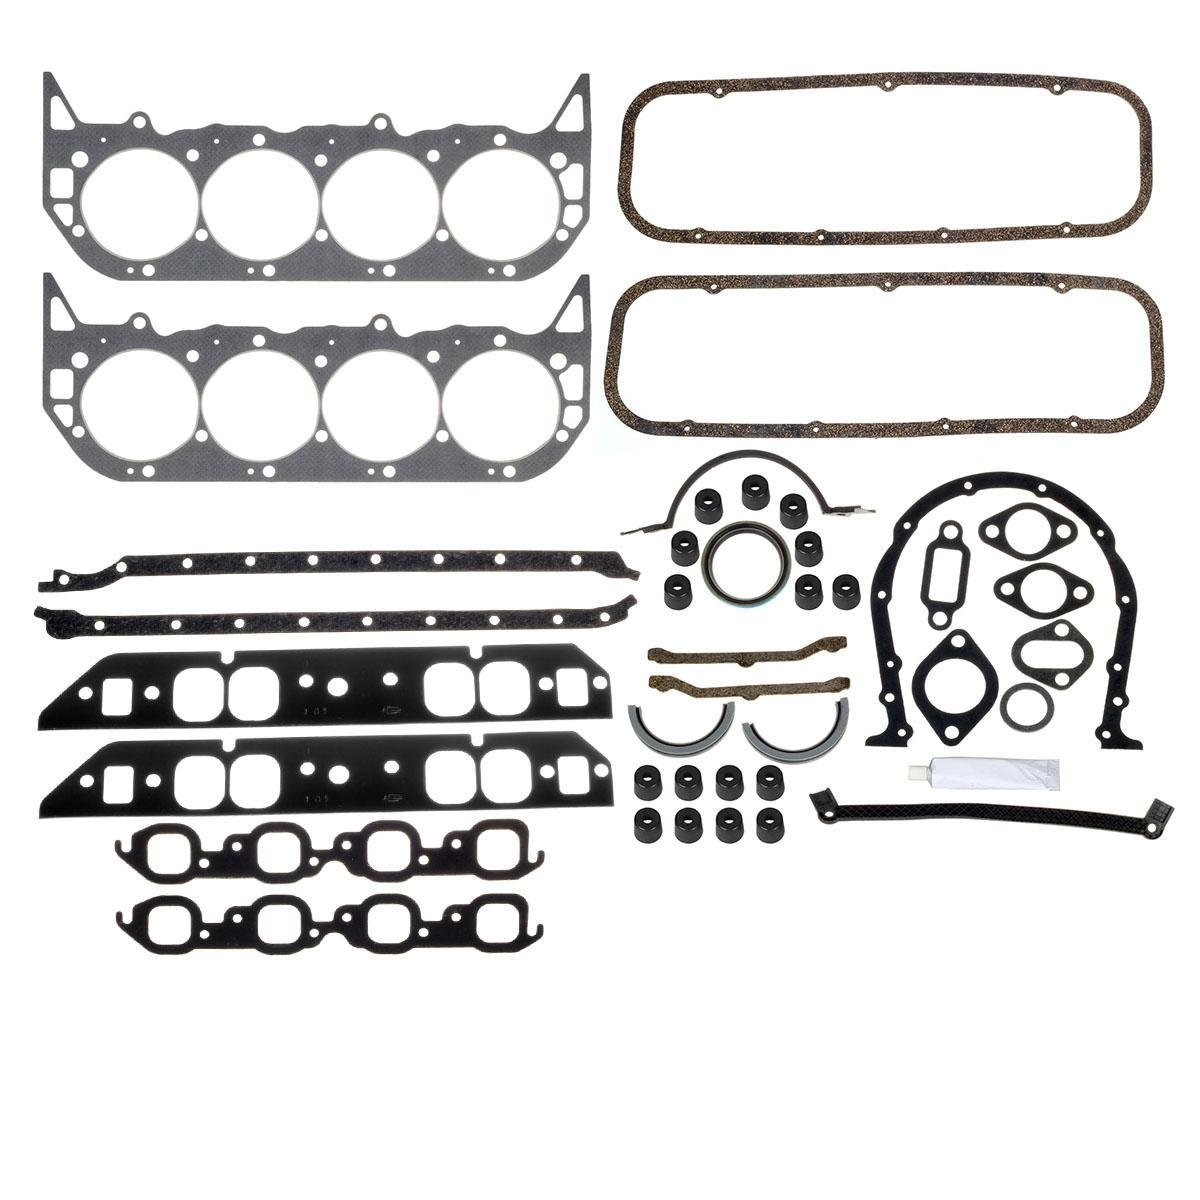 Big Block Chevy Engine Overhaul Gasket Kit 396 427 454 BBC /260-1009 for 1965-1975 Chevrolet Bel Air,for 1975-1978 GMC C25 Pickup,for 1965-1970 Pontiac Strato-Chief,for 1968-1974 GMC K35/K3500 Pickup